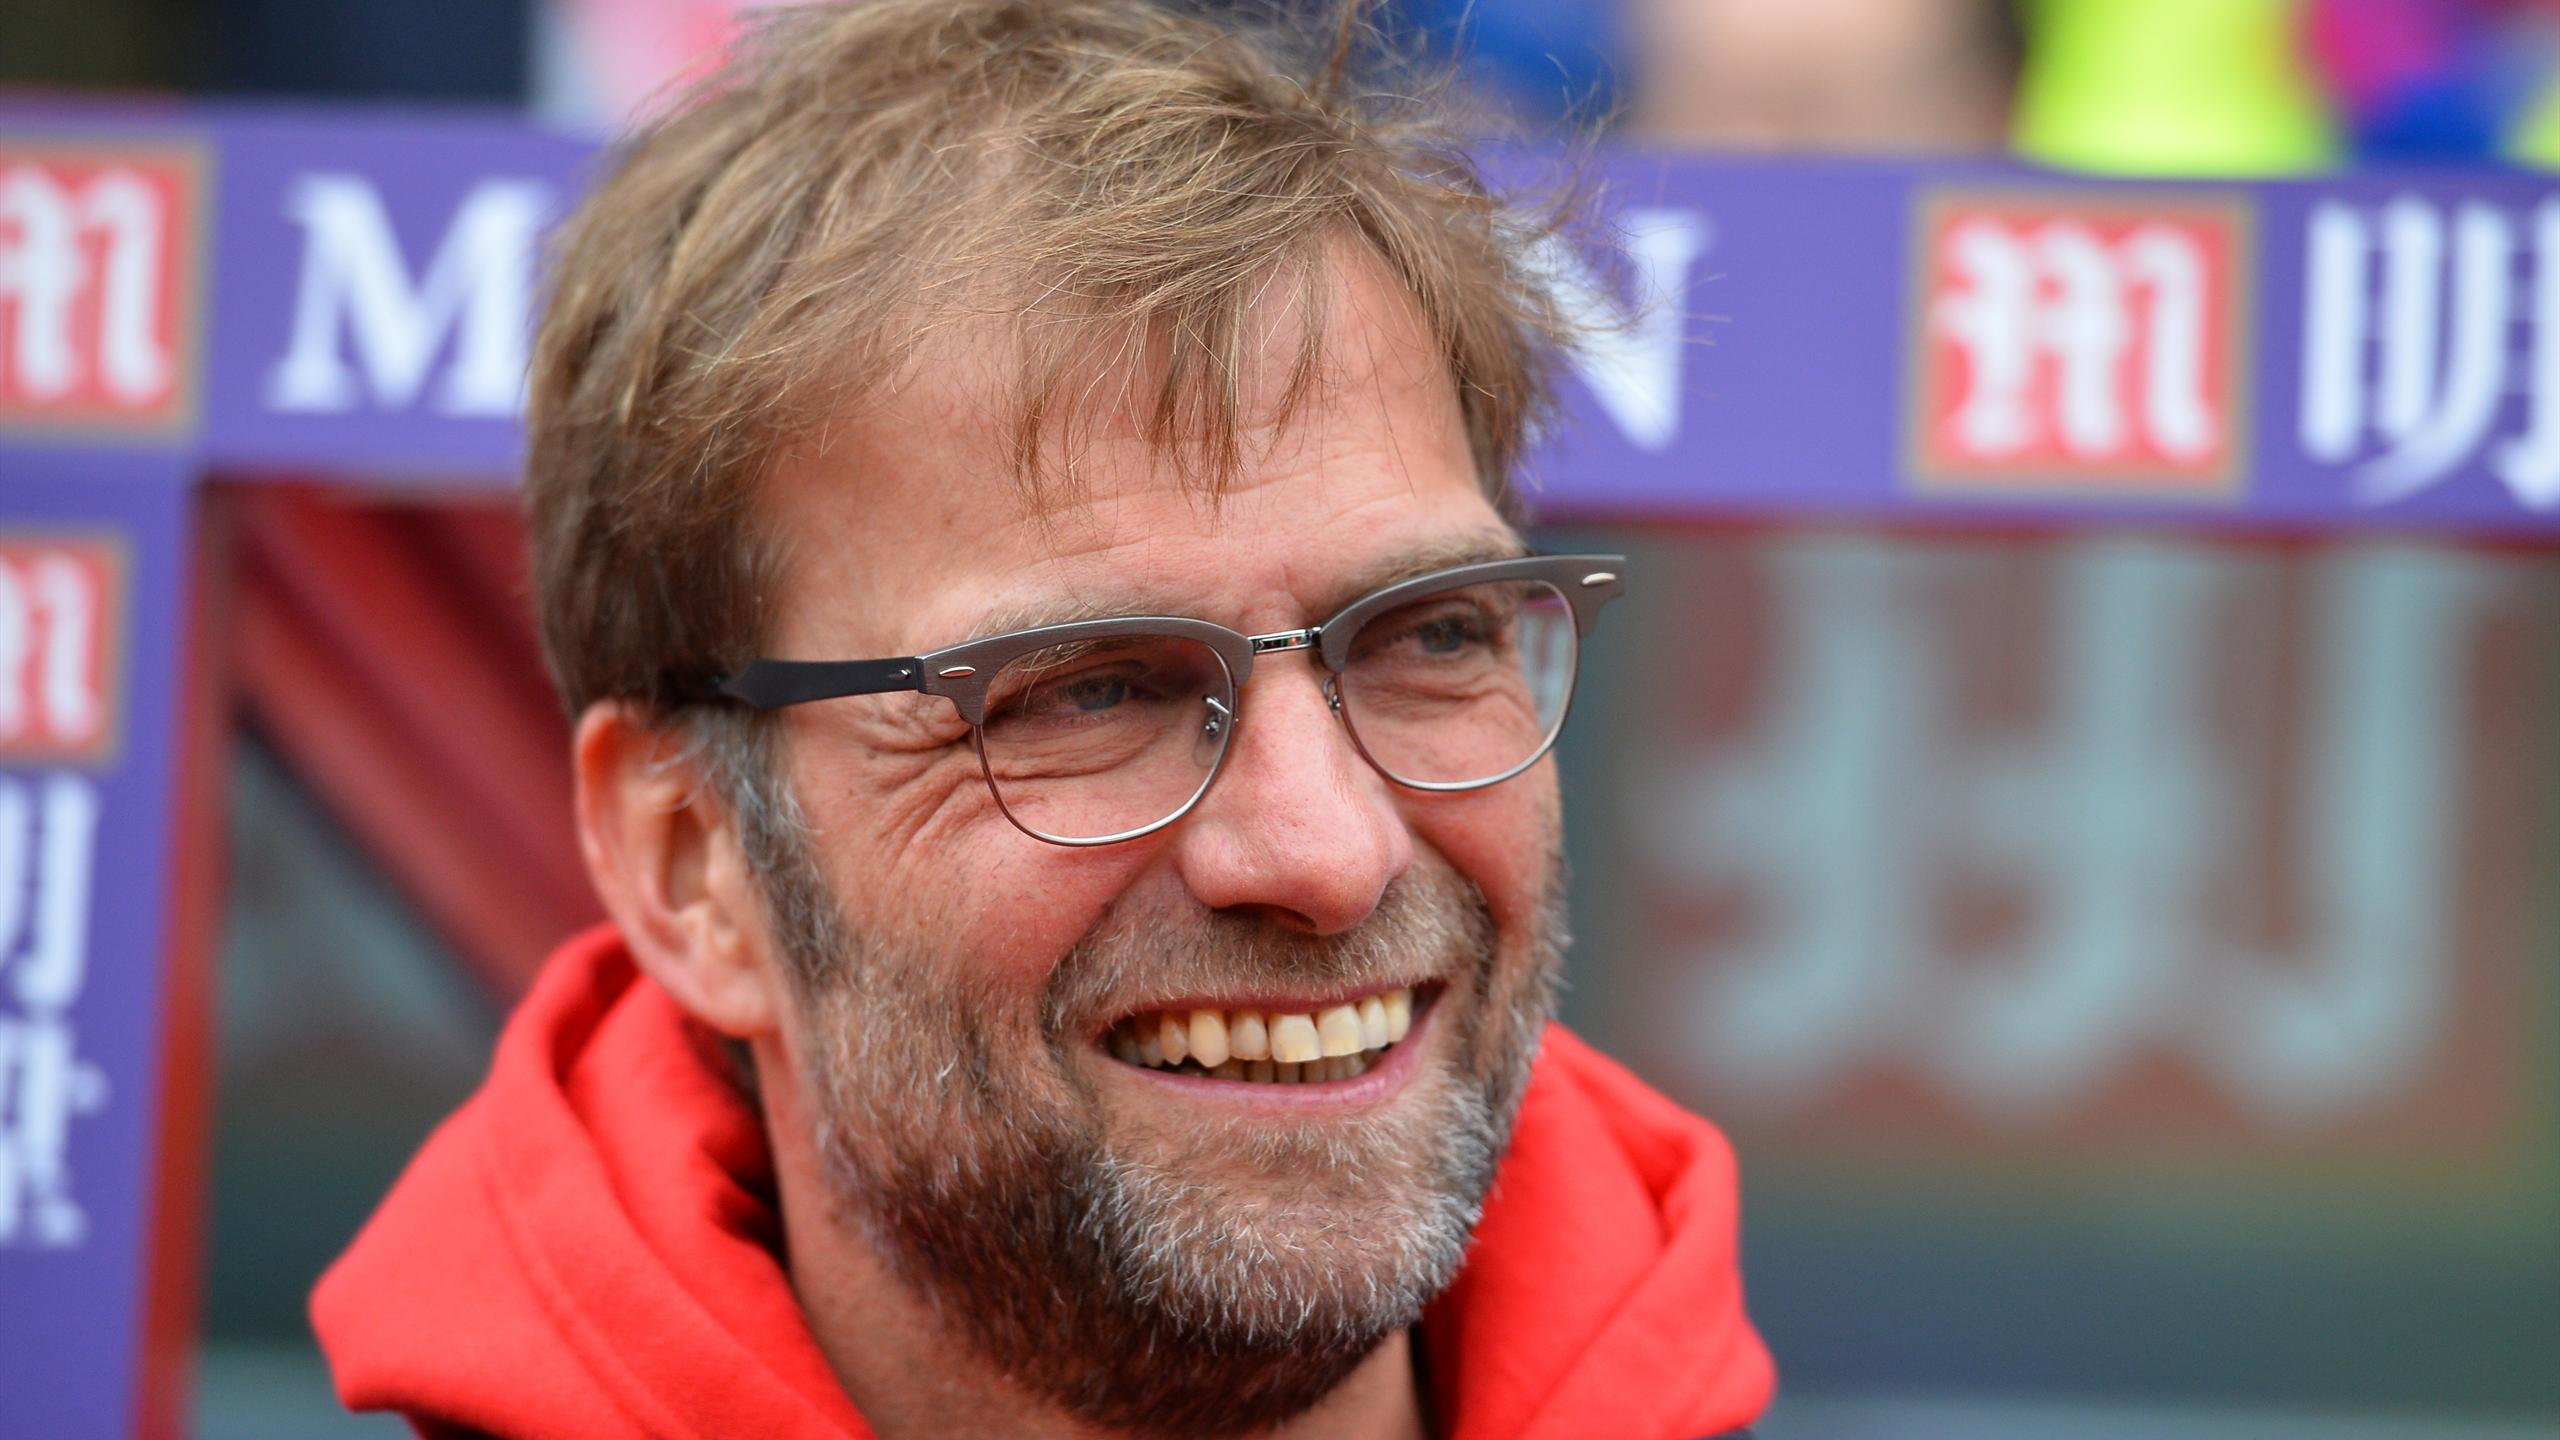 Liverpool's German manager Jurgen Klopp smiles ahead of the English Premier League football match between Crystal Palace and Liverpool